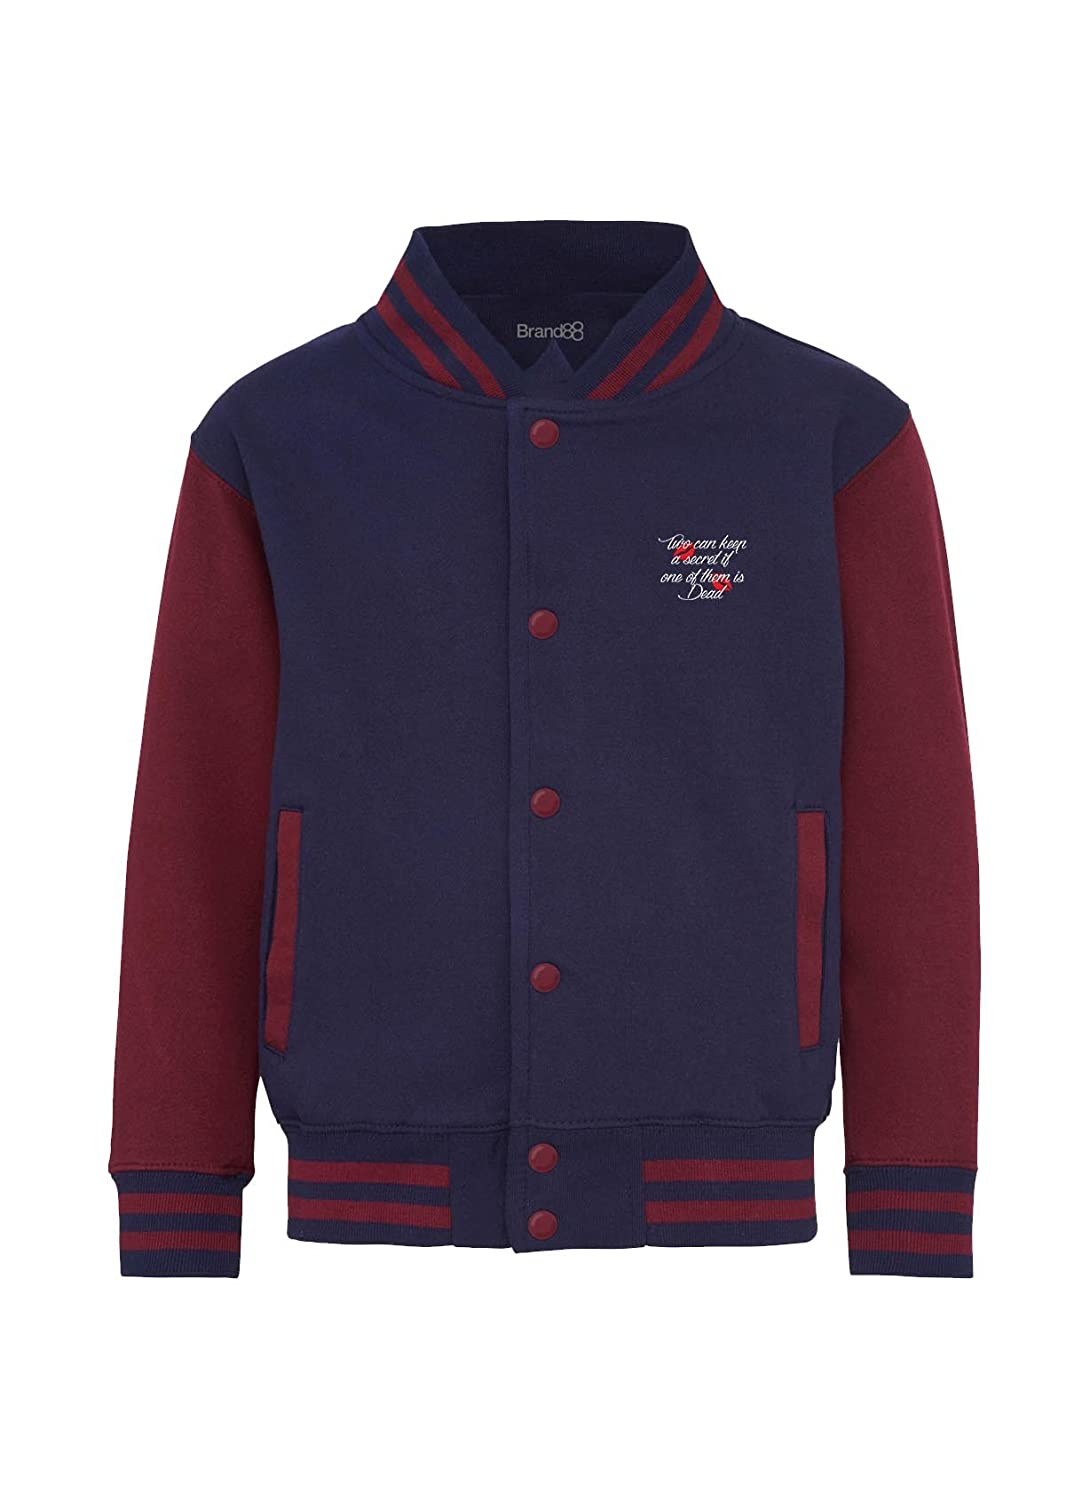 Kids Varsity Jacket Brand88 Two Can Keep A Secret If One of Them is Dead